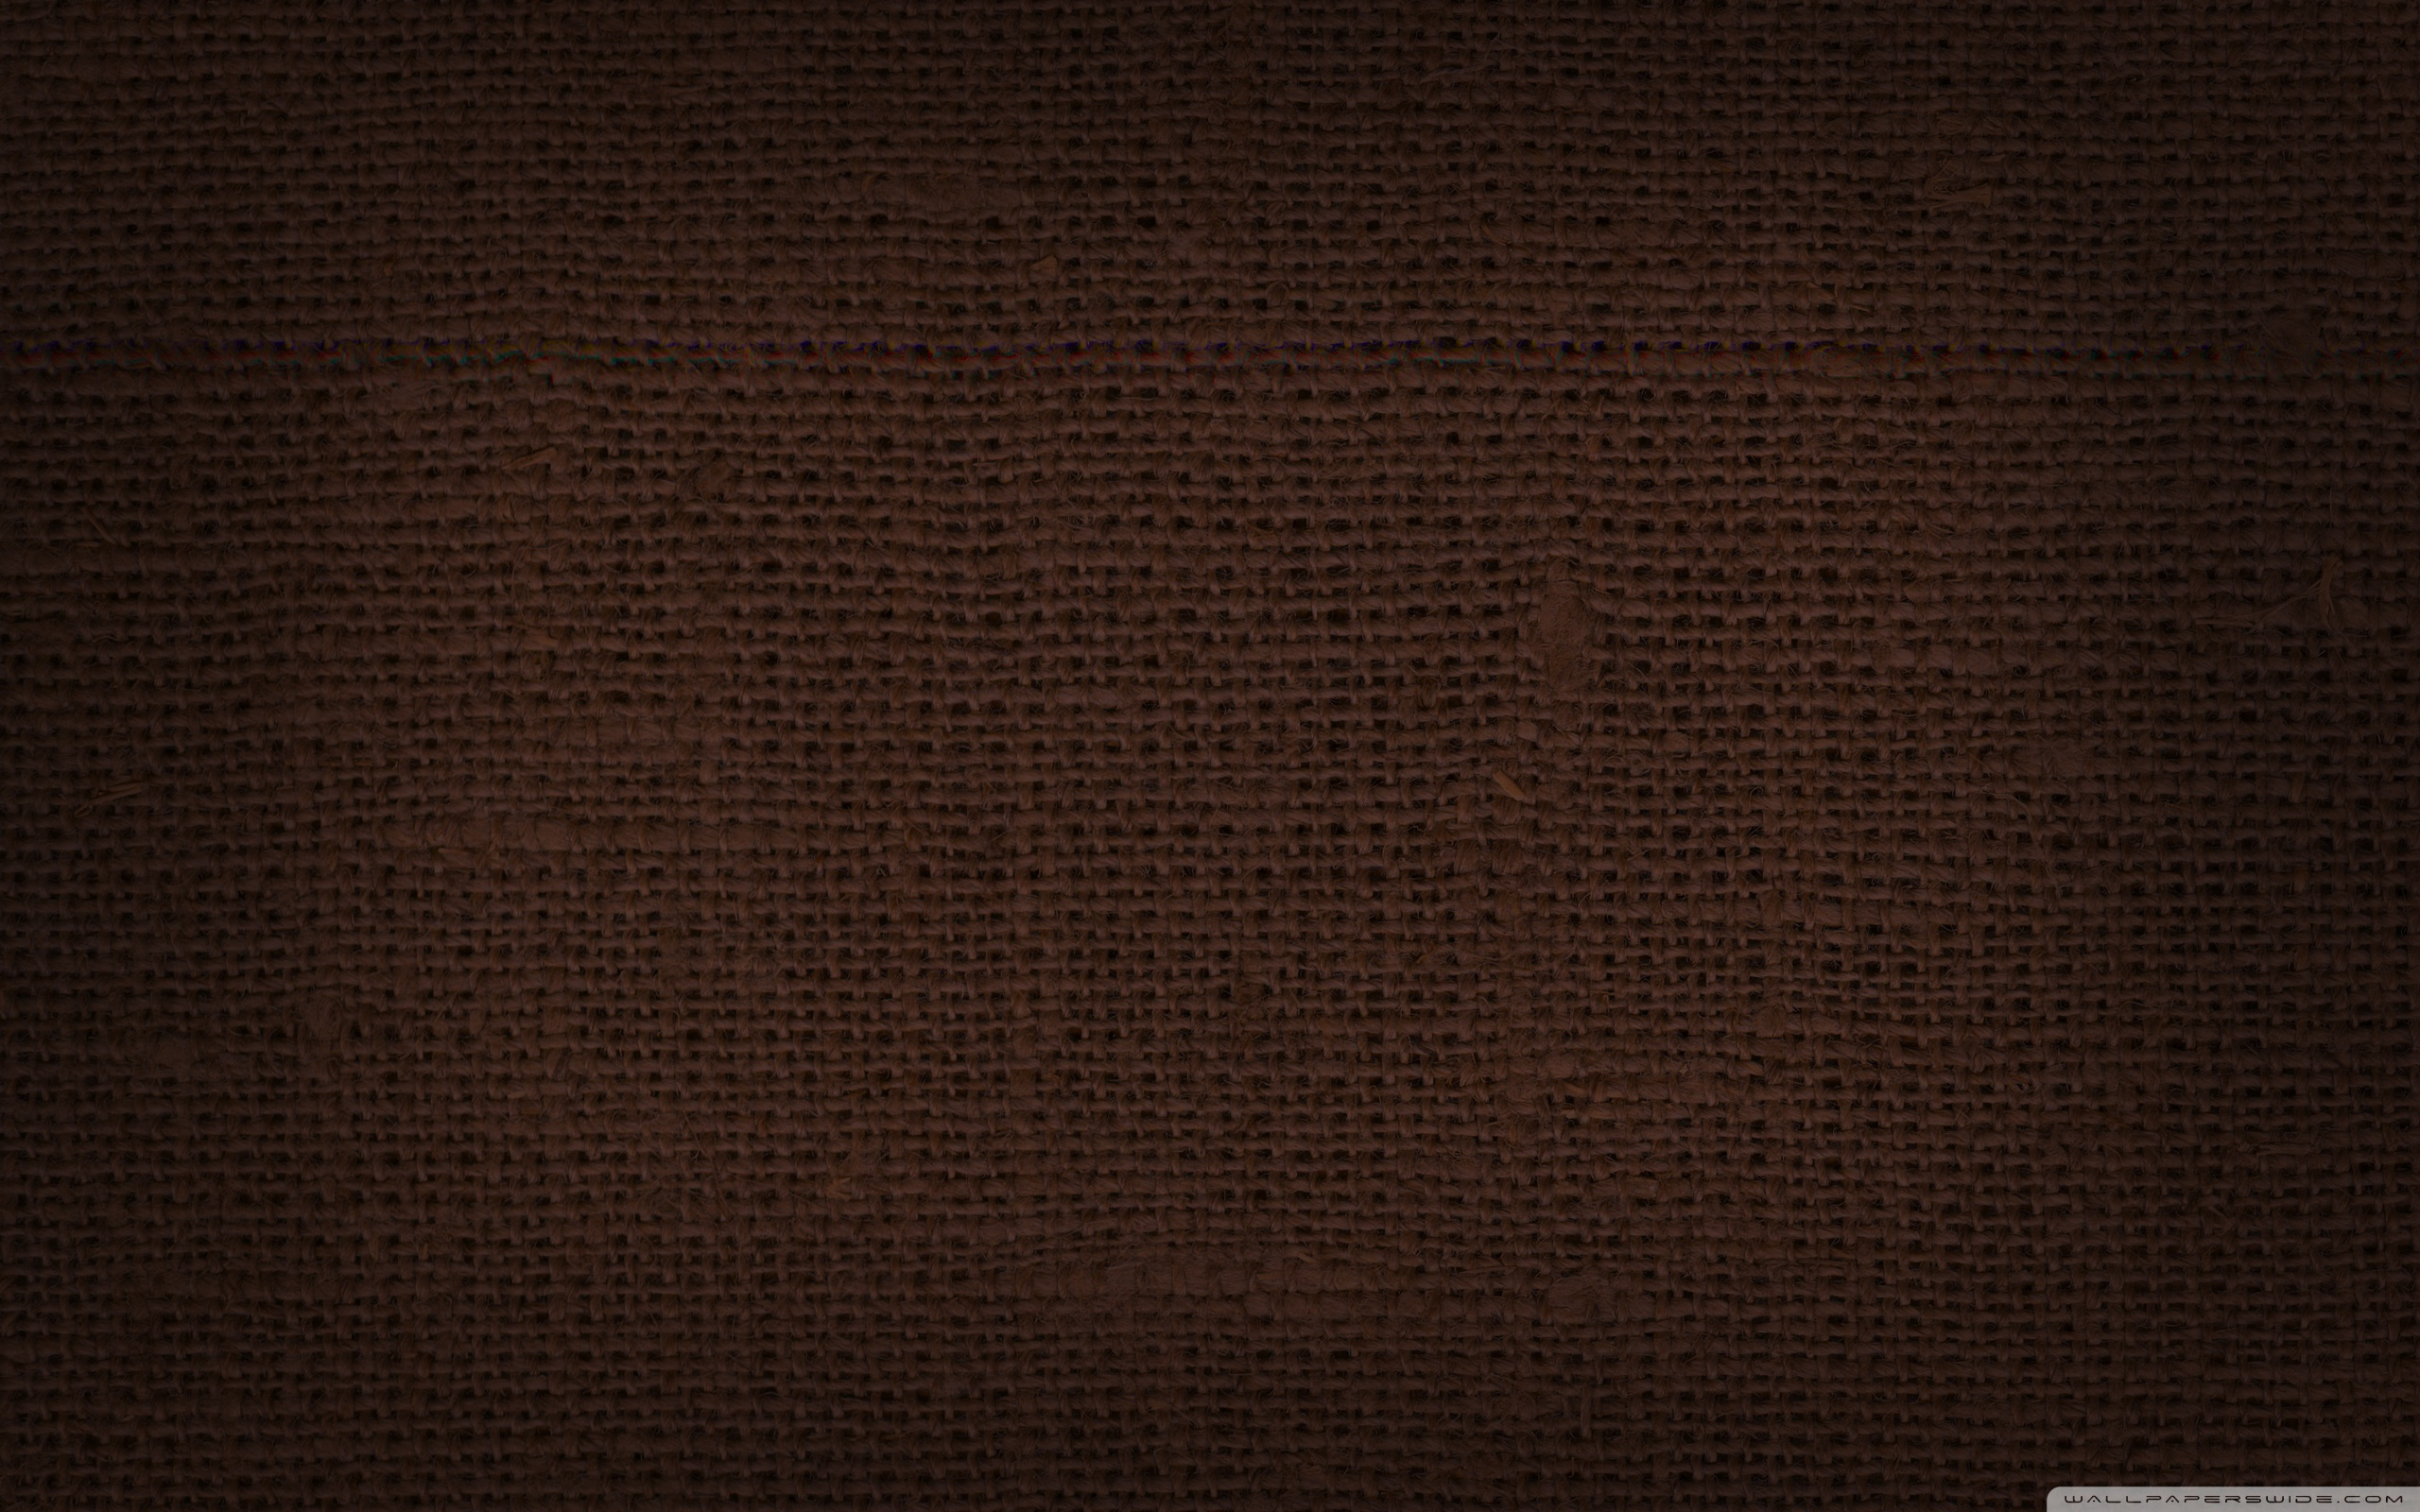 Brown Wallpaper 2560x1600 40010 HD Wallpapers Download Free Images Wallpaper [1000image.com]